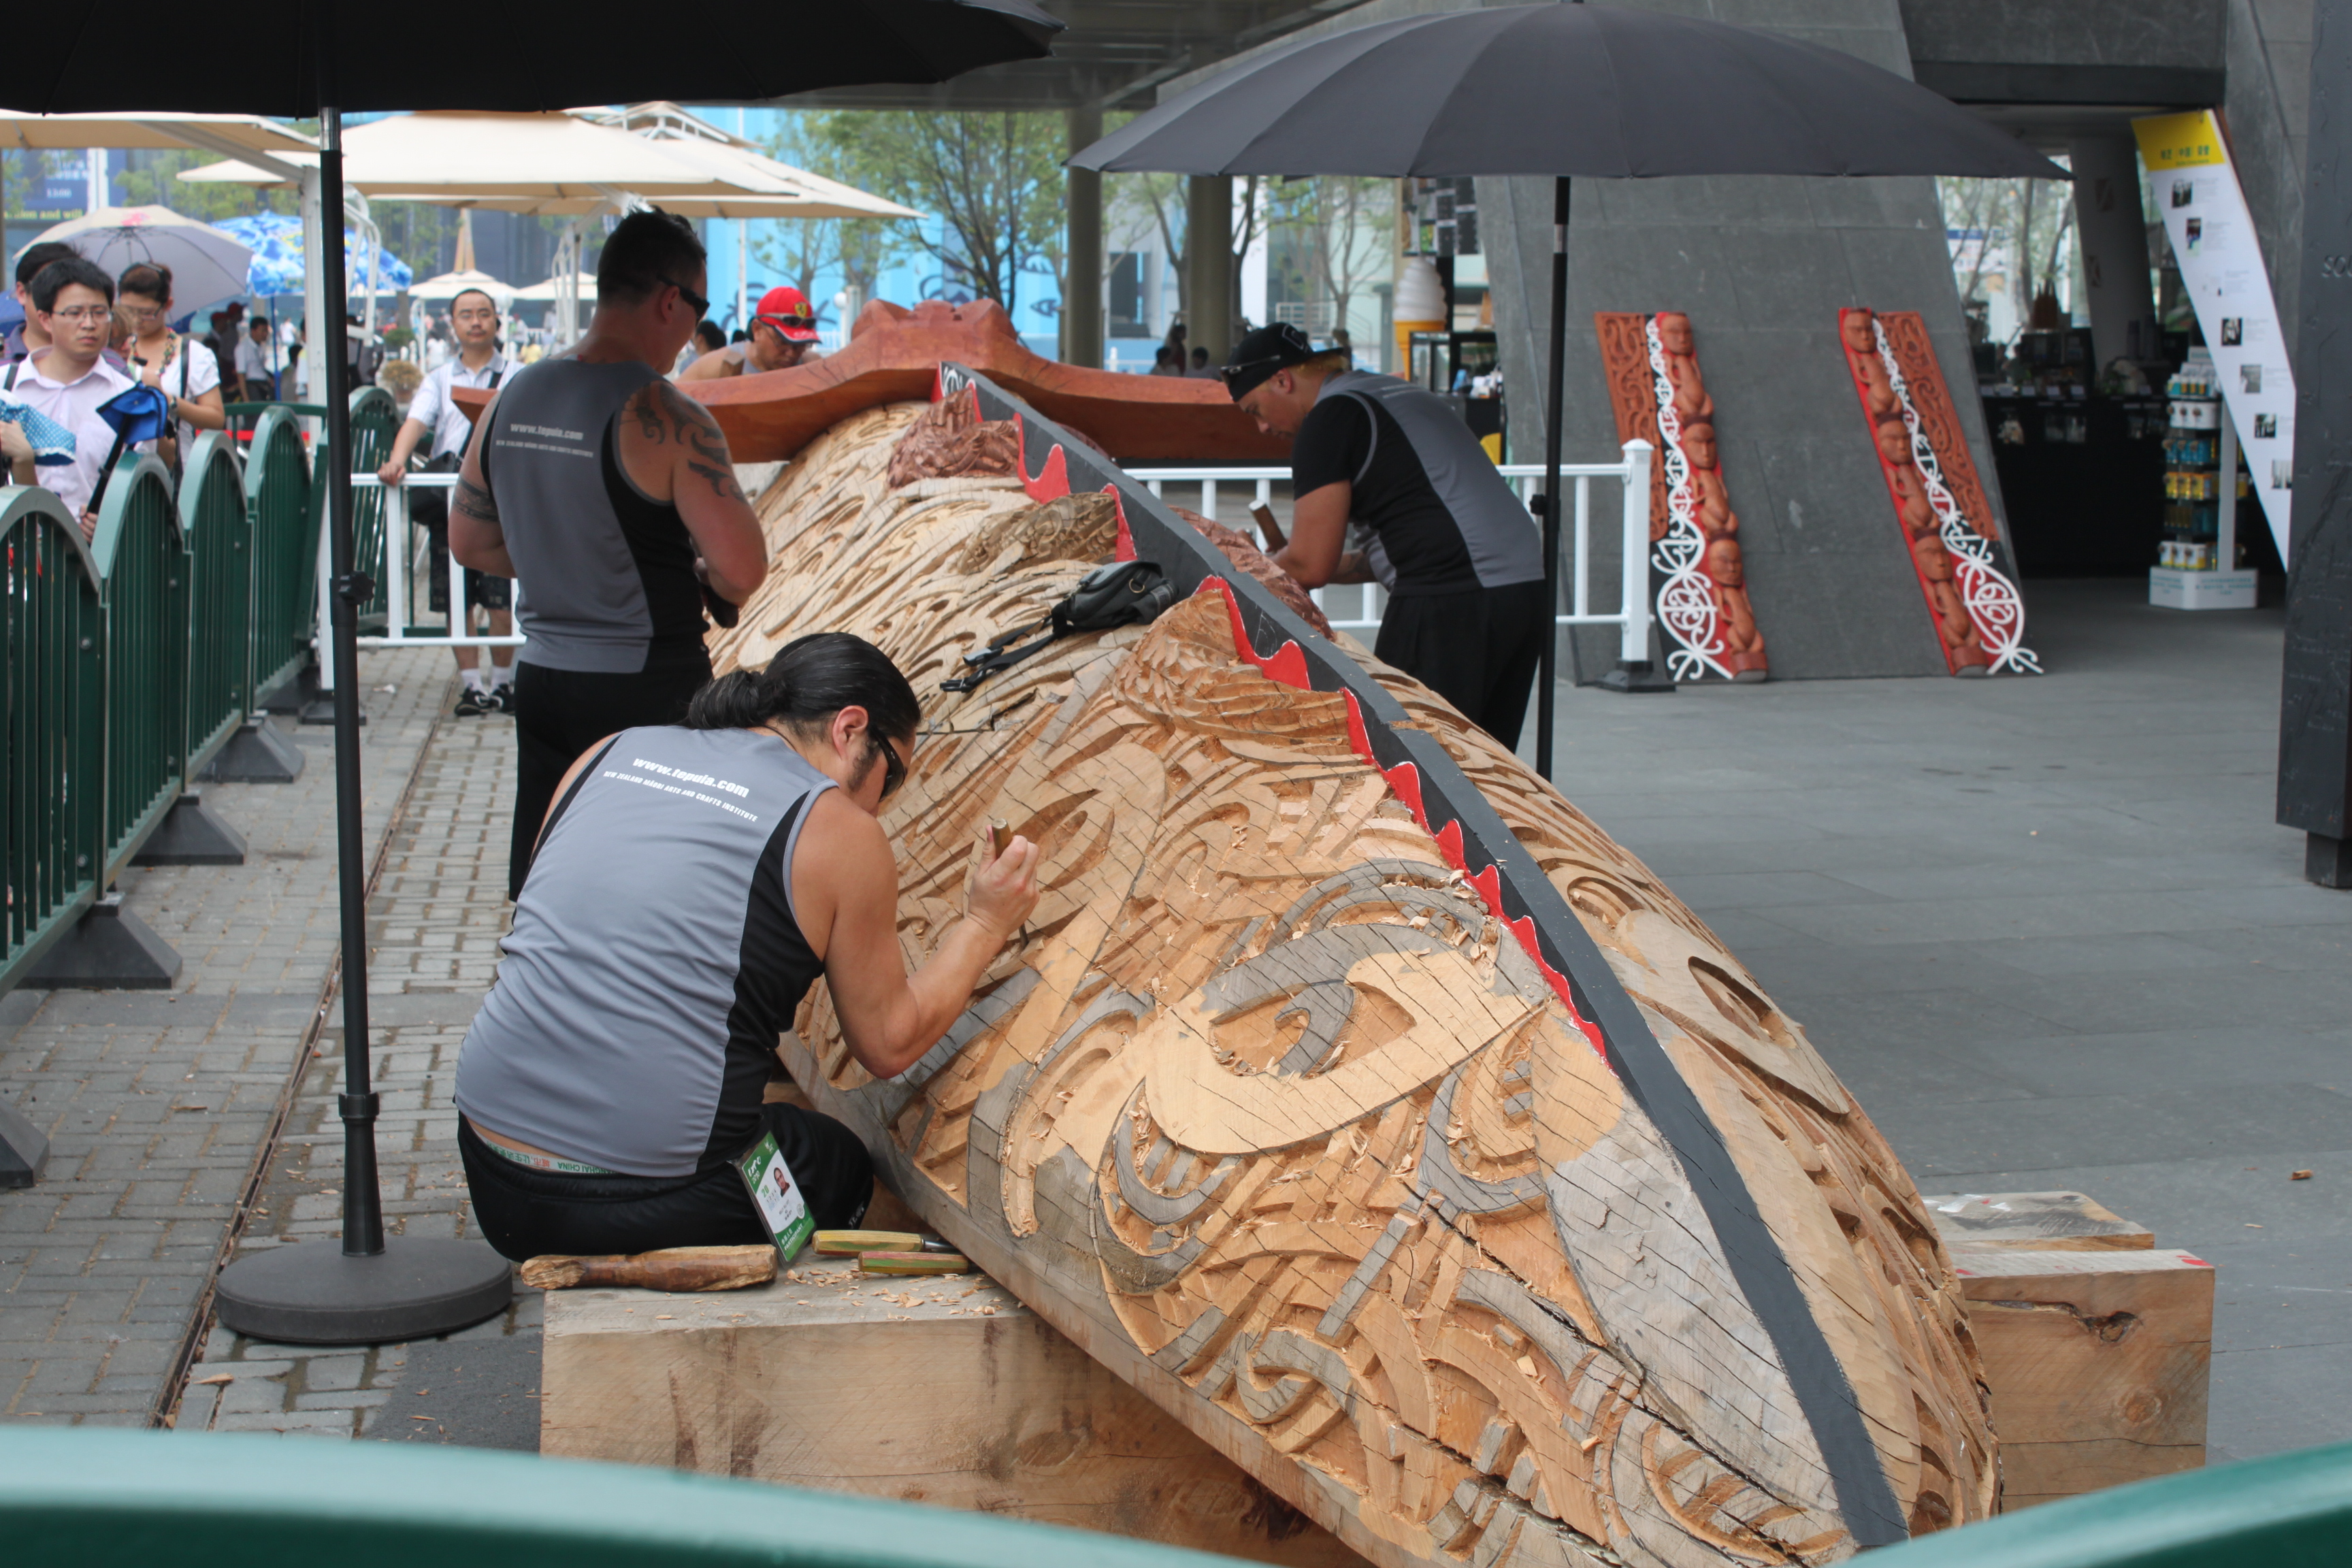 Wood carvers at work on a large sculpture.